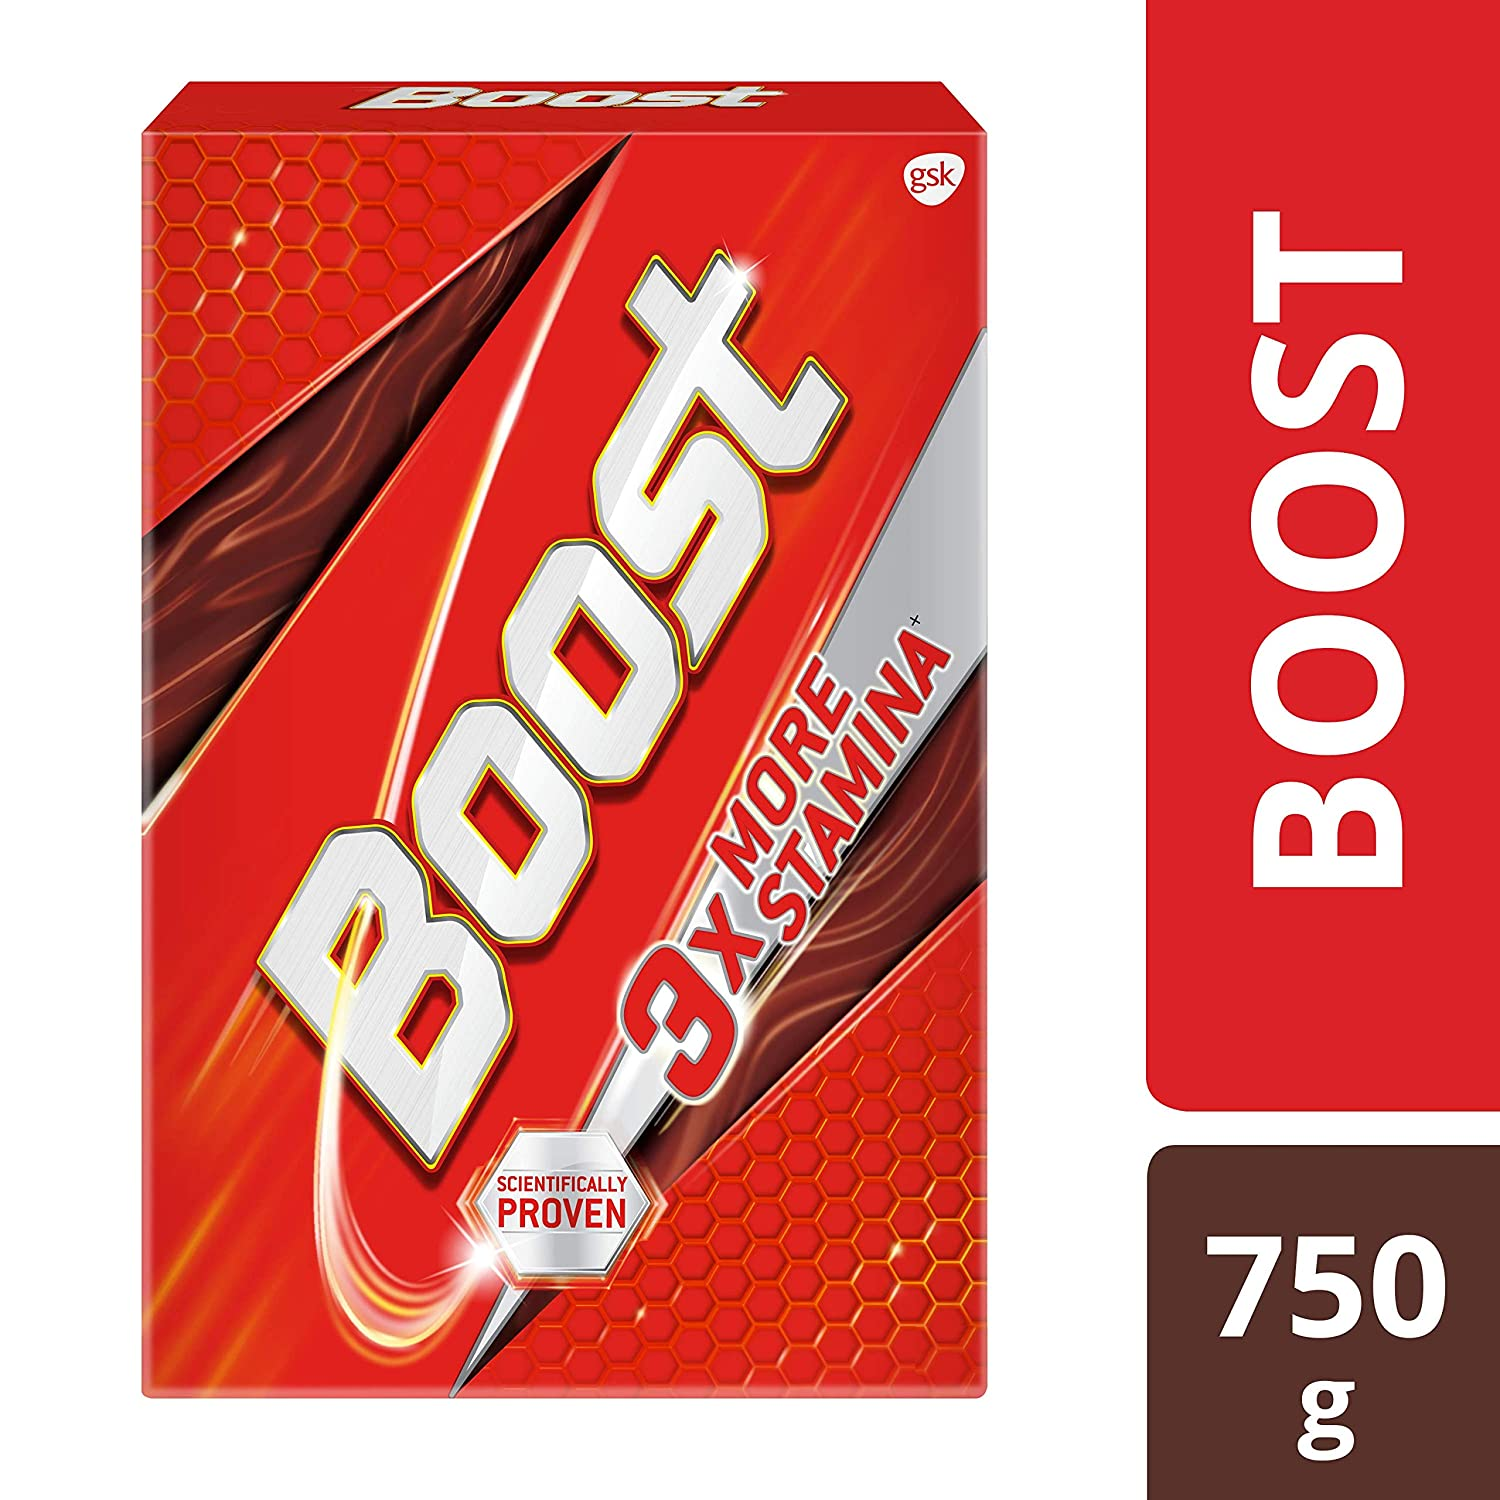 Boost Health, Energy & Sports Nutrition drink - 750 g